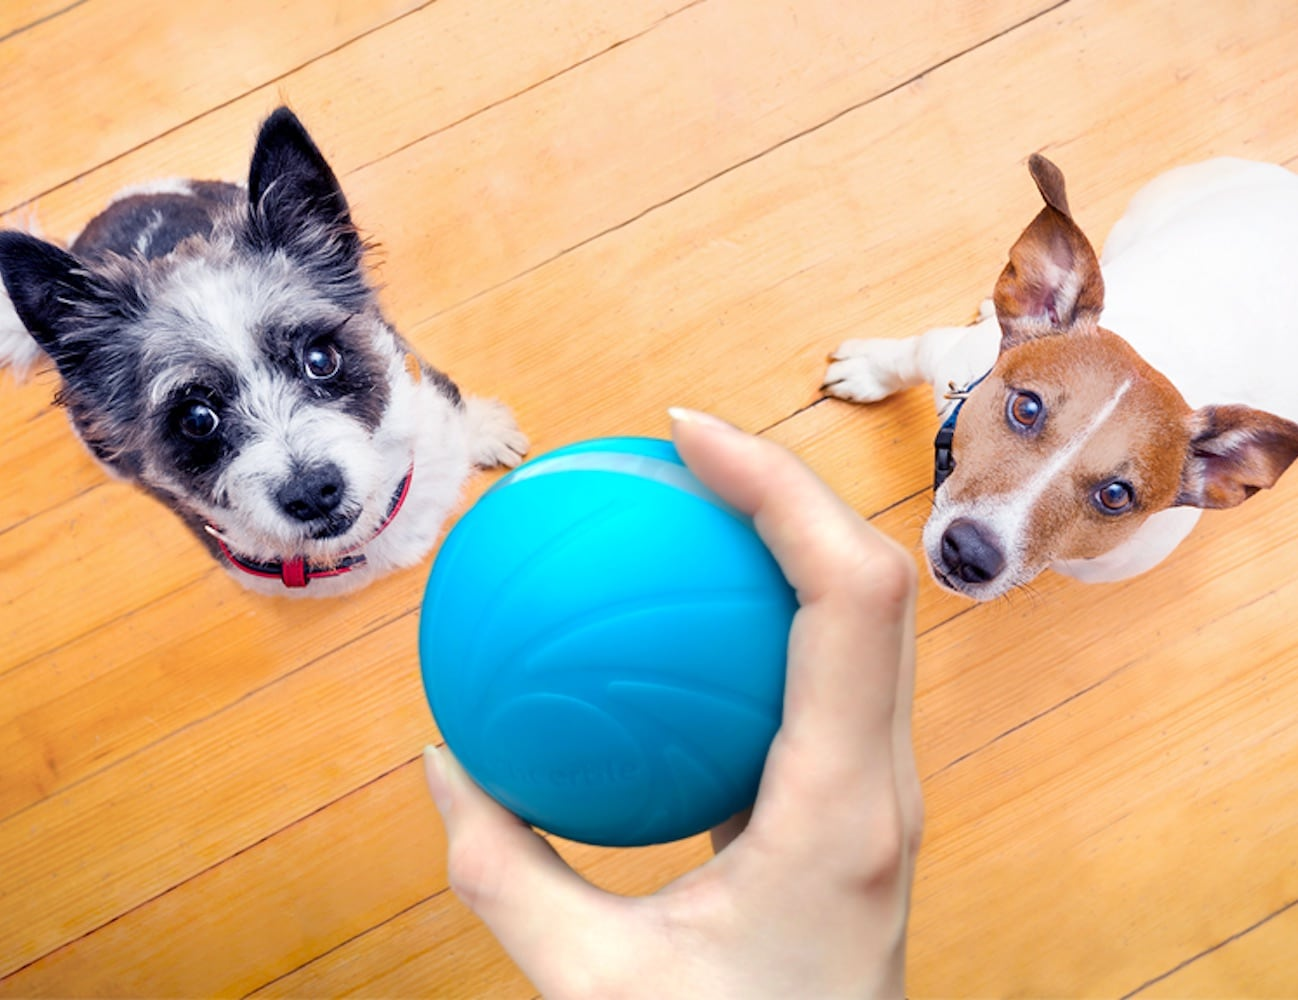 Cheerble Wicked Ball Smart Automatic Pet Toy is a companion for your pet